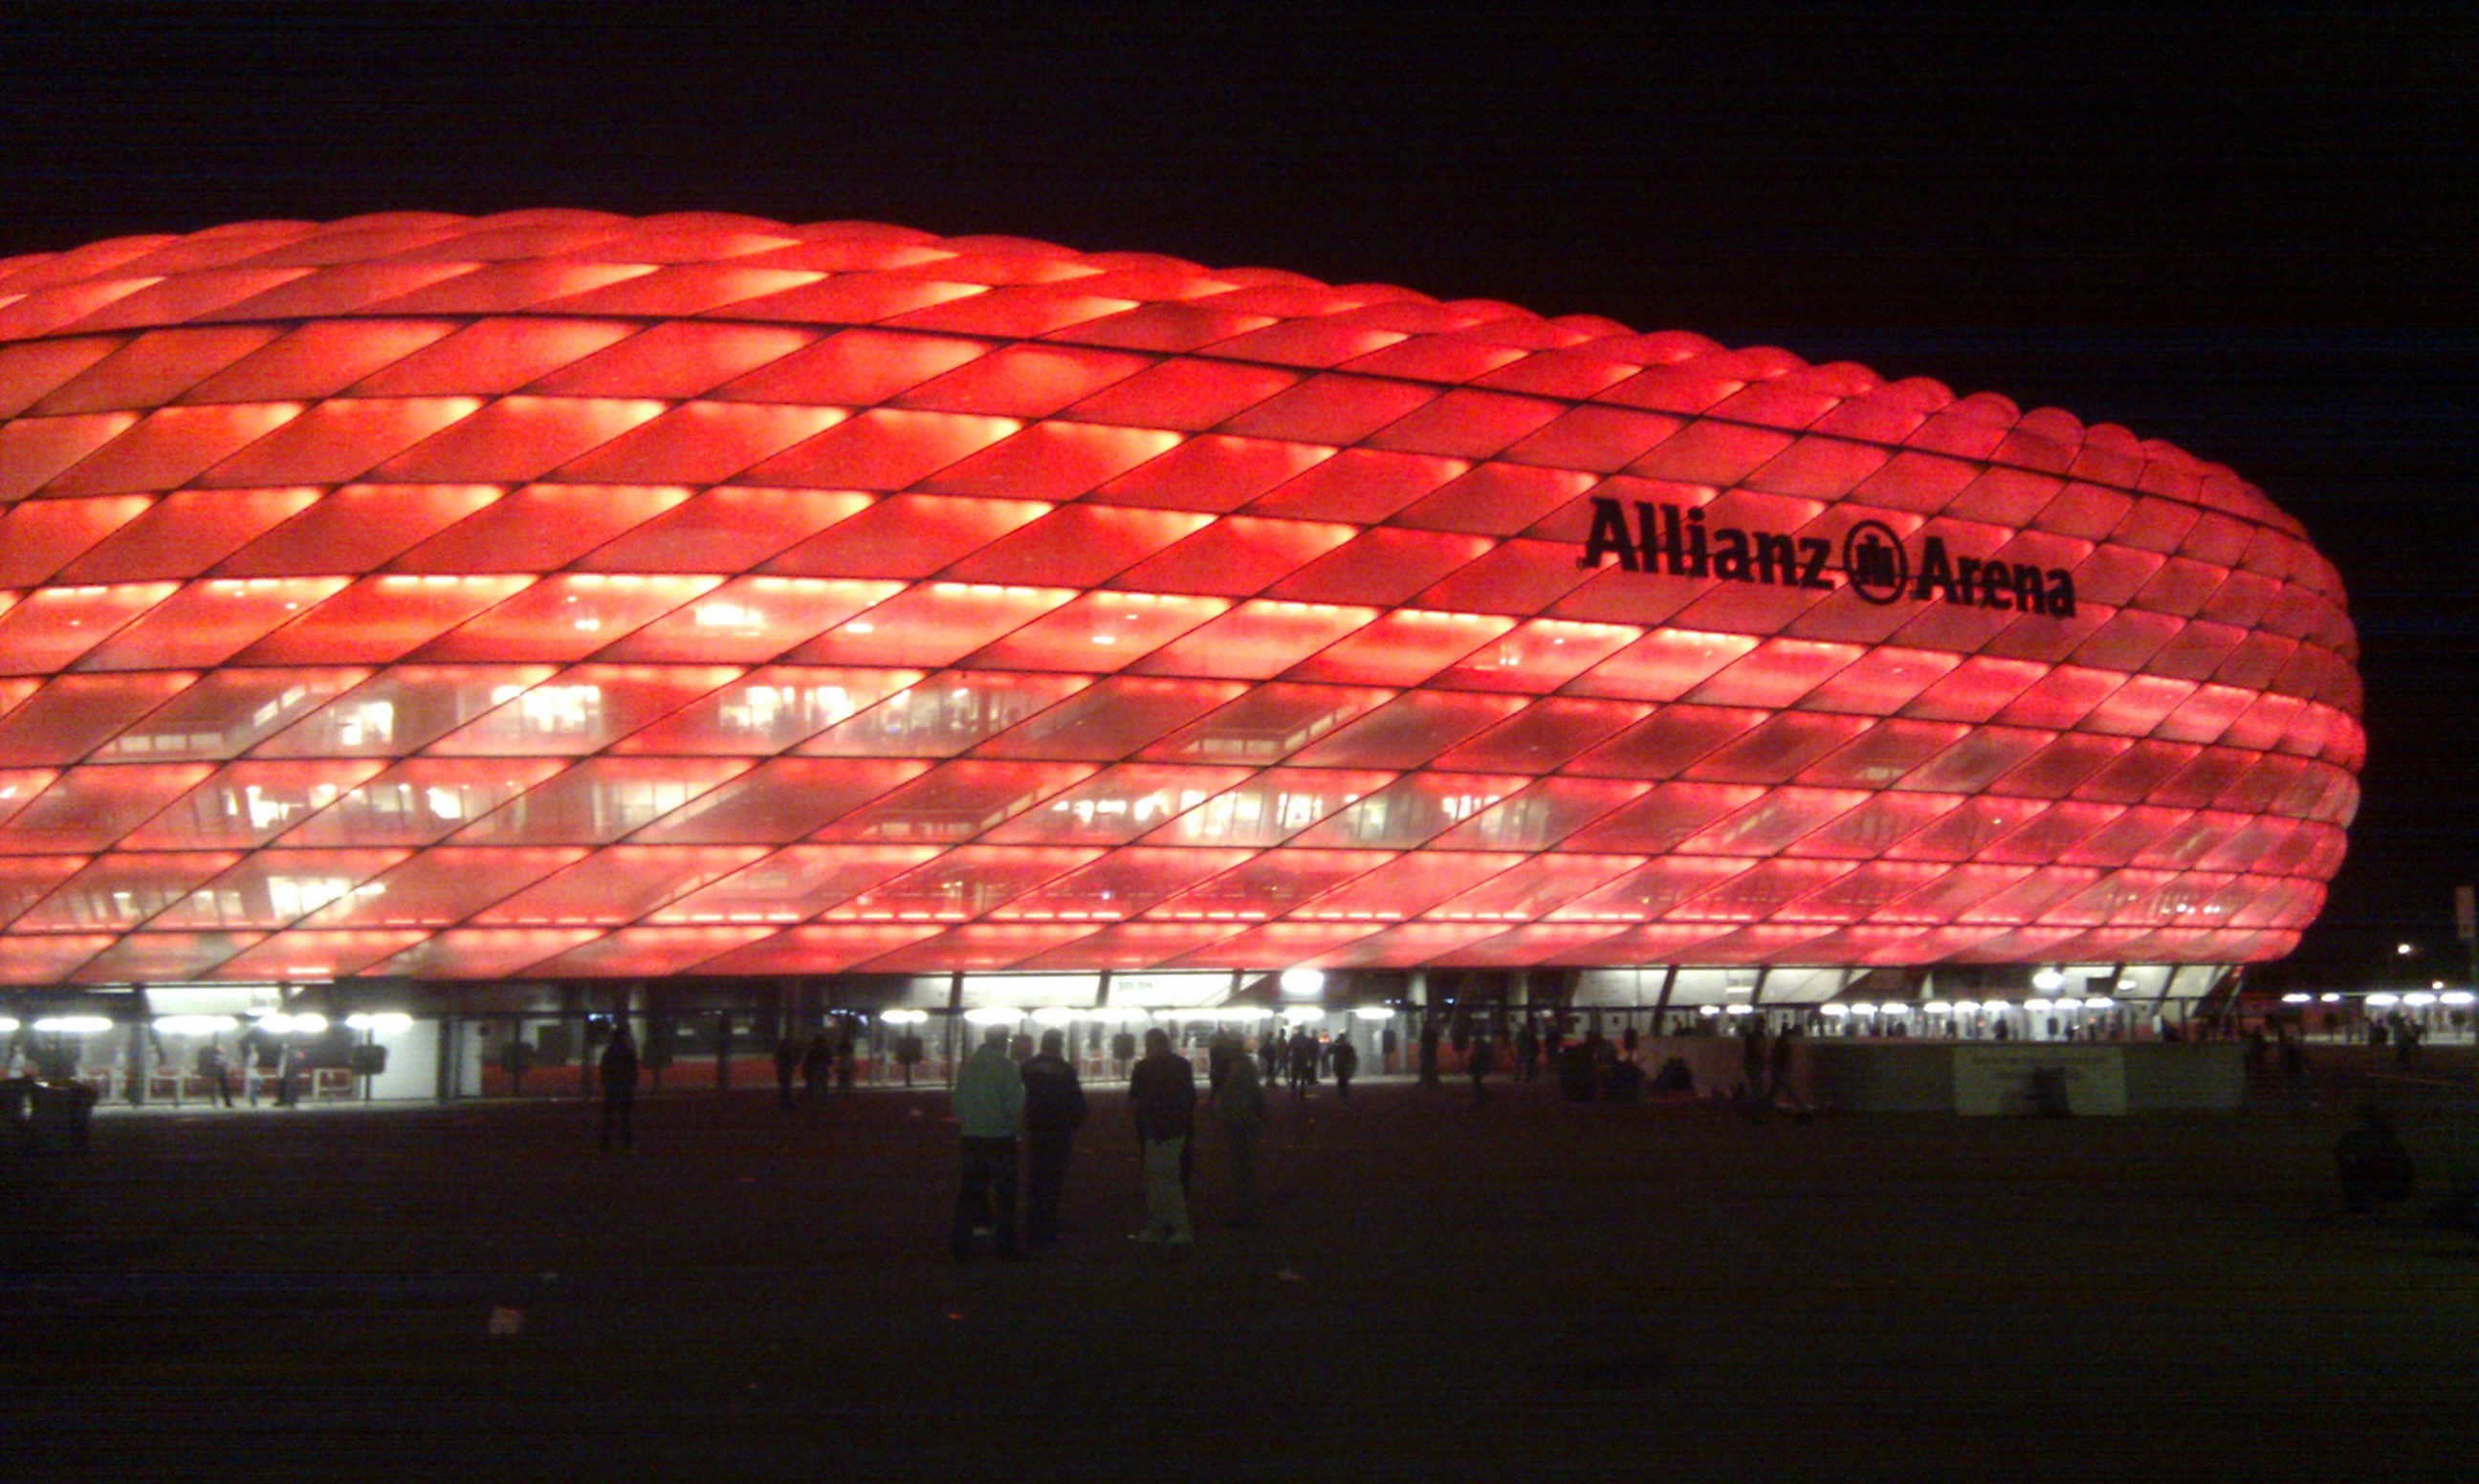 Audi Hd Wallpapers For Mobile Allianz Arena Wallpapers 63 Images